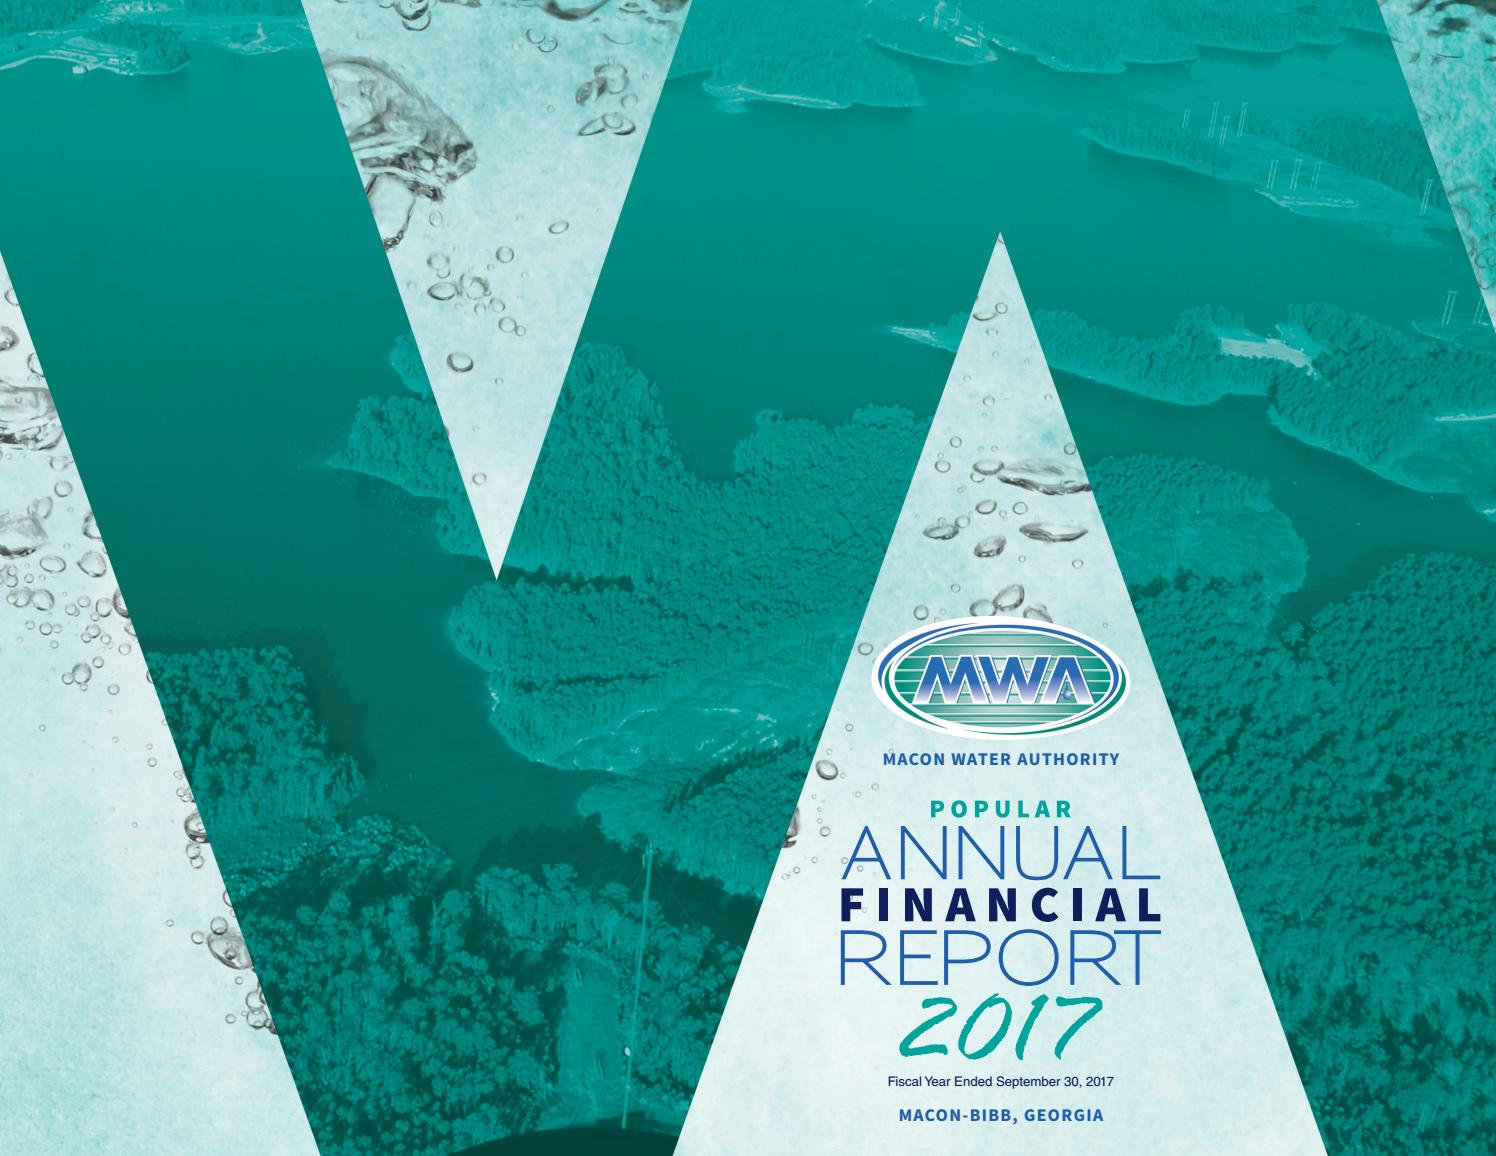 Macon Water Authority 2017 Popular Annual Financial Report V3 By